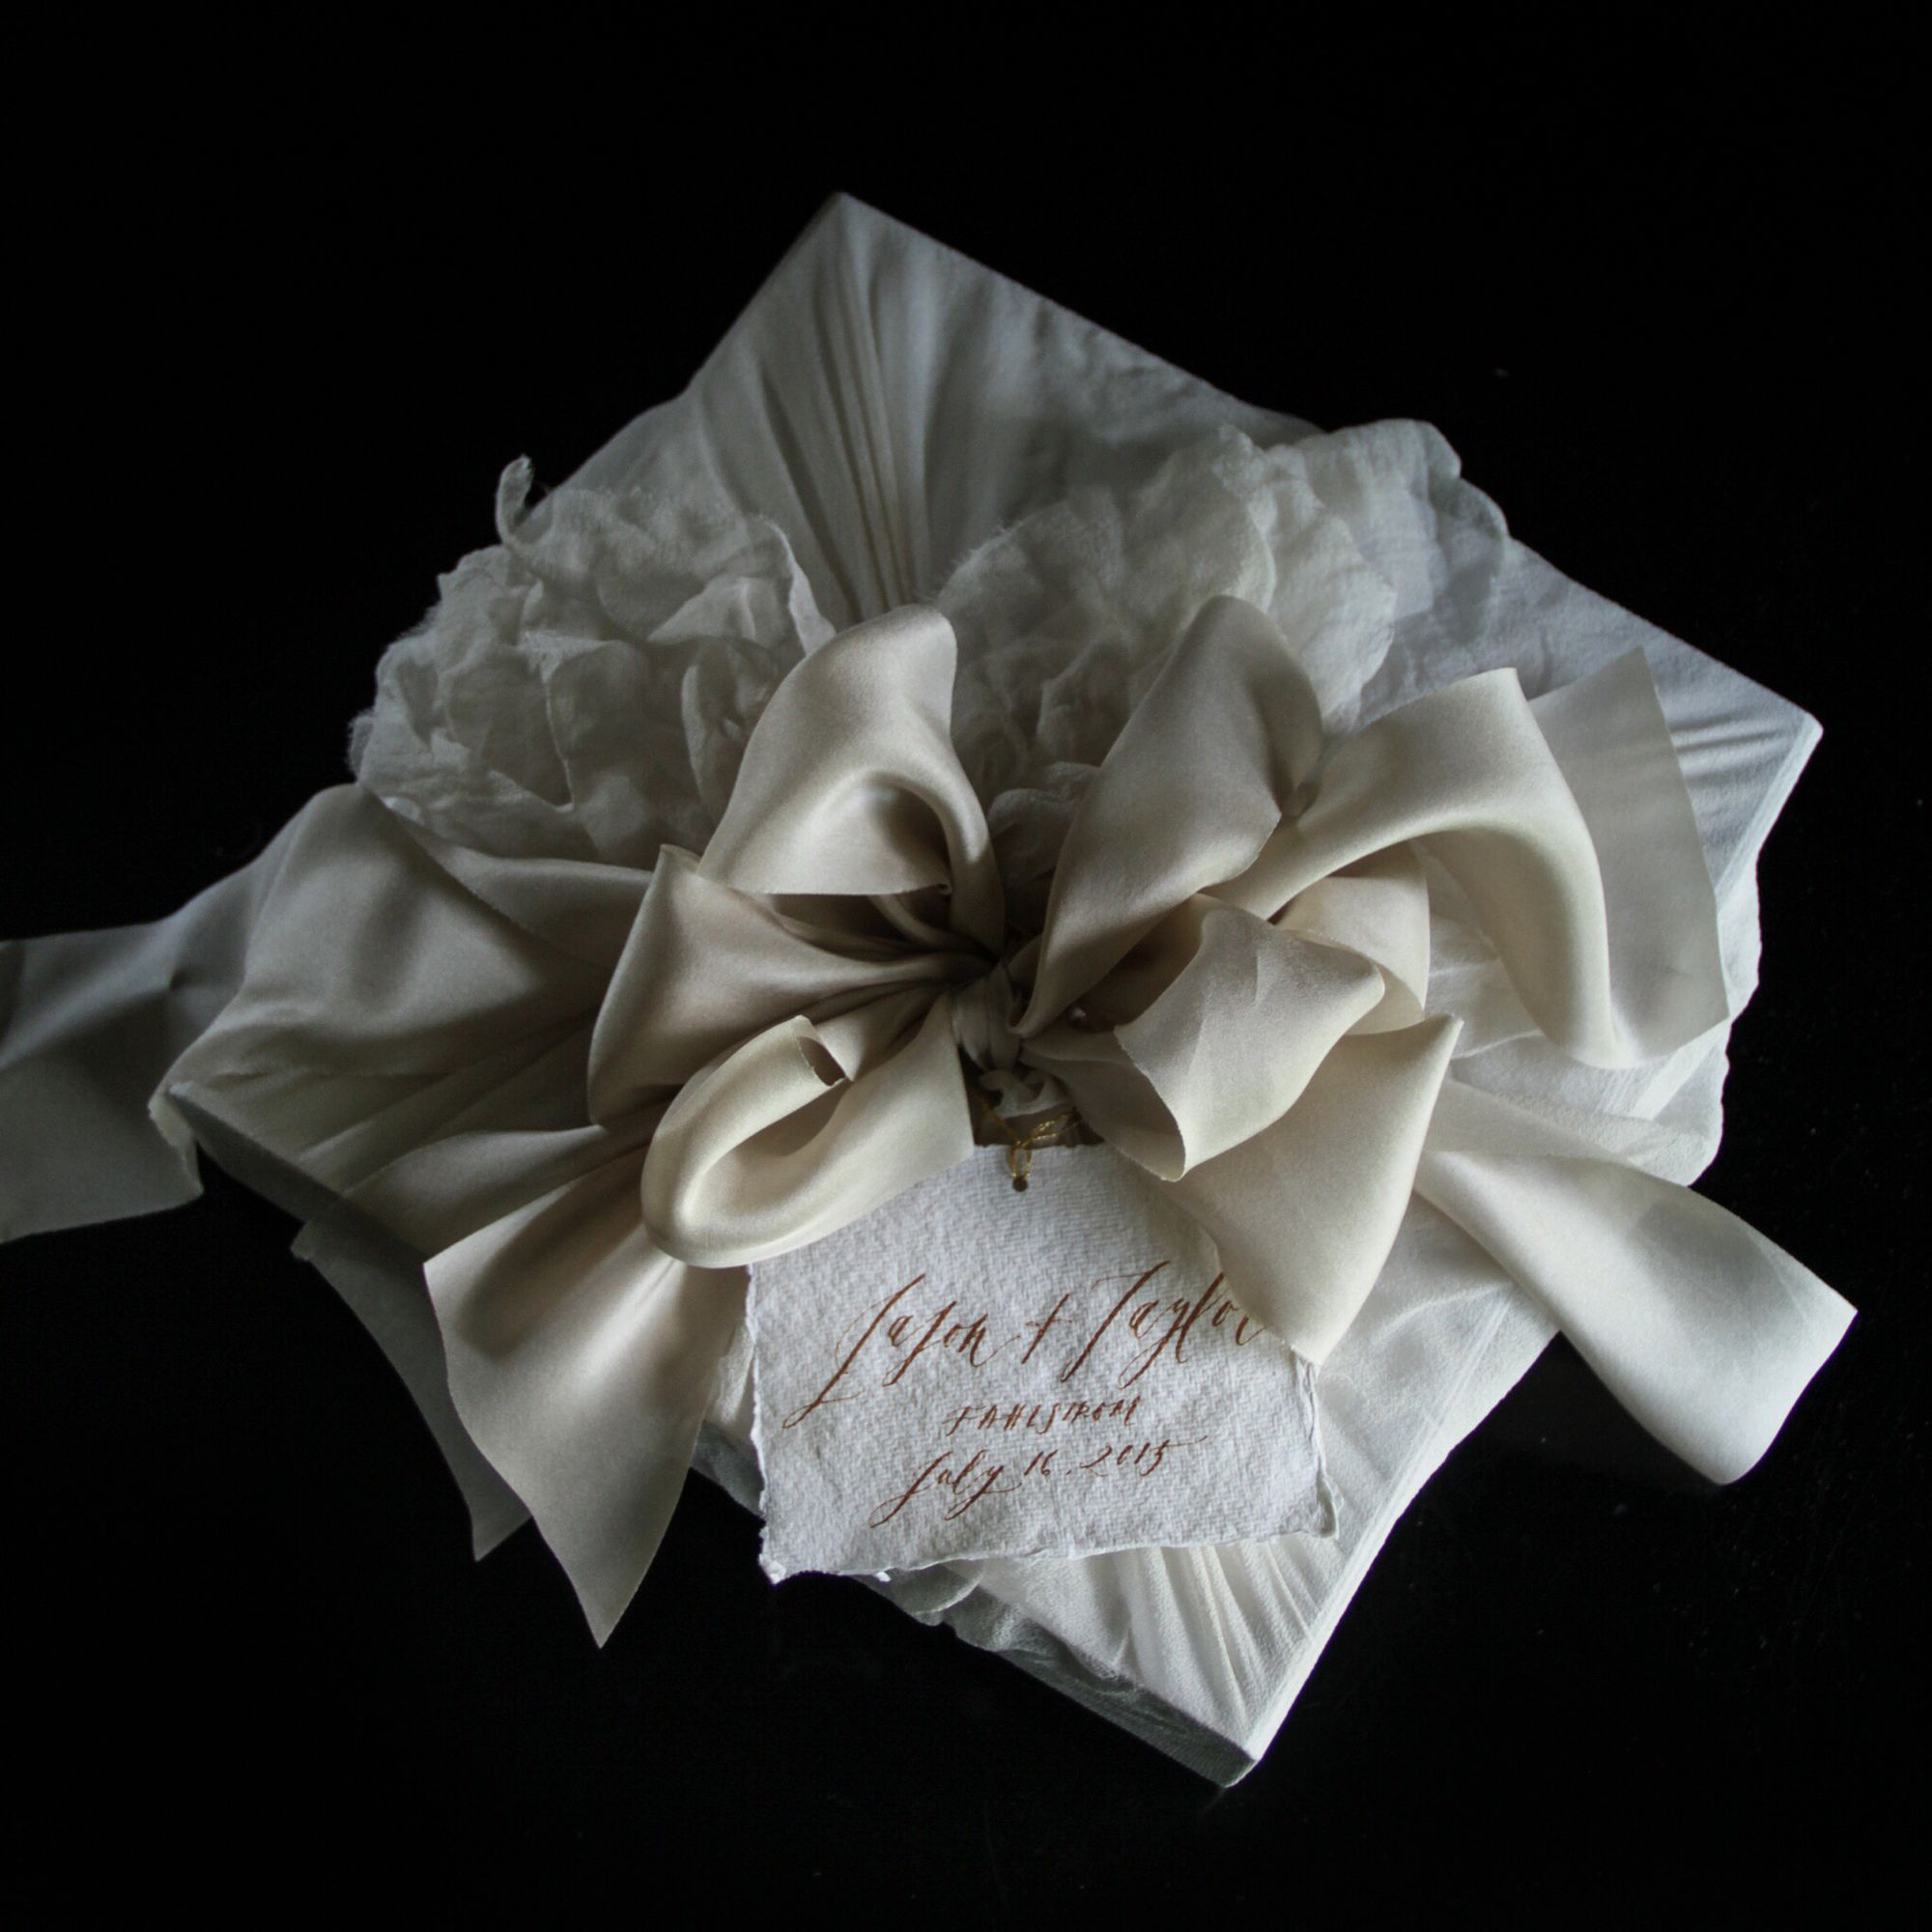 Gift wrapping with silk u willow inspirations pinterest gift